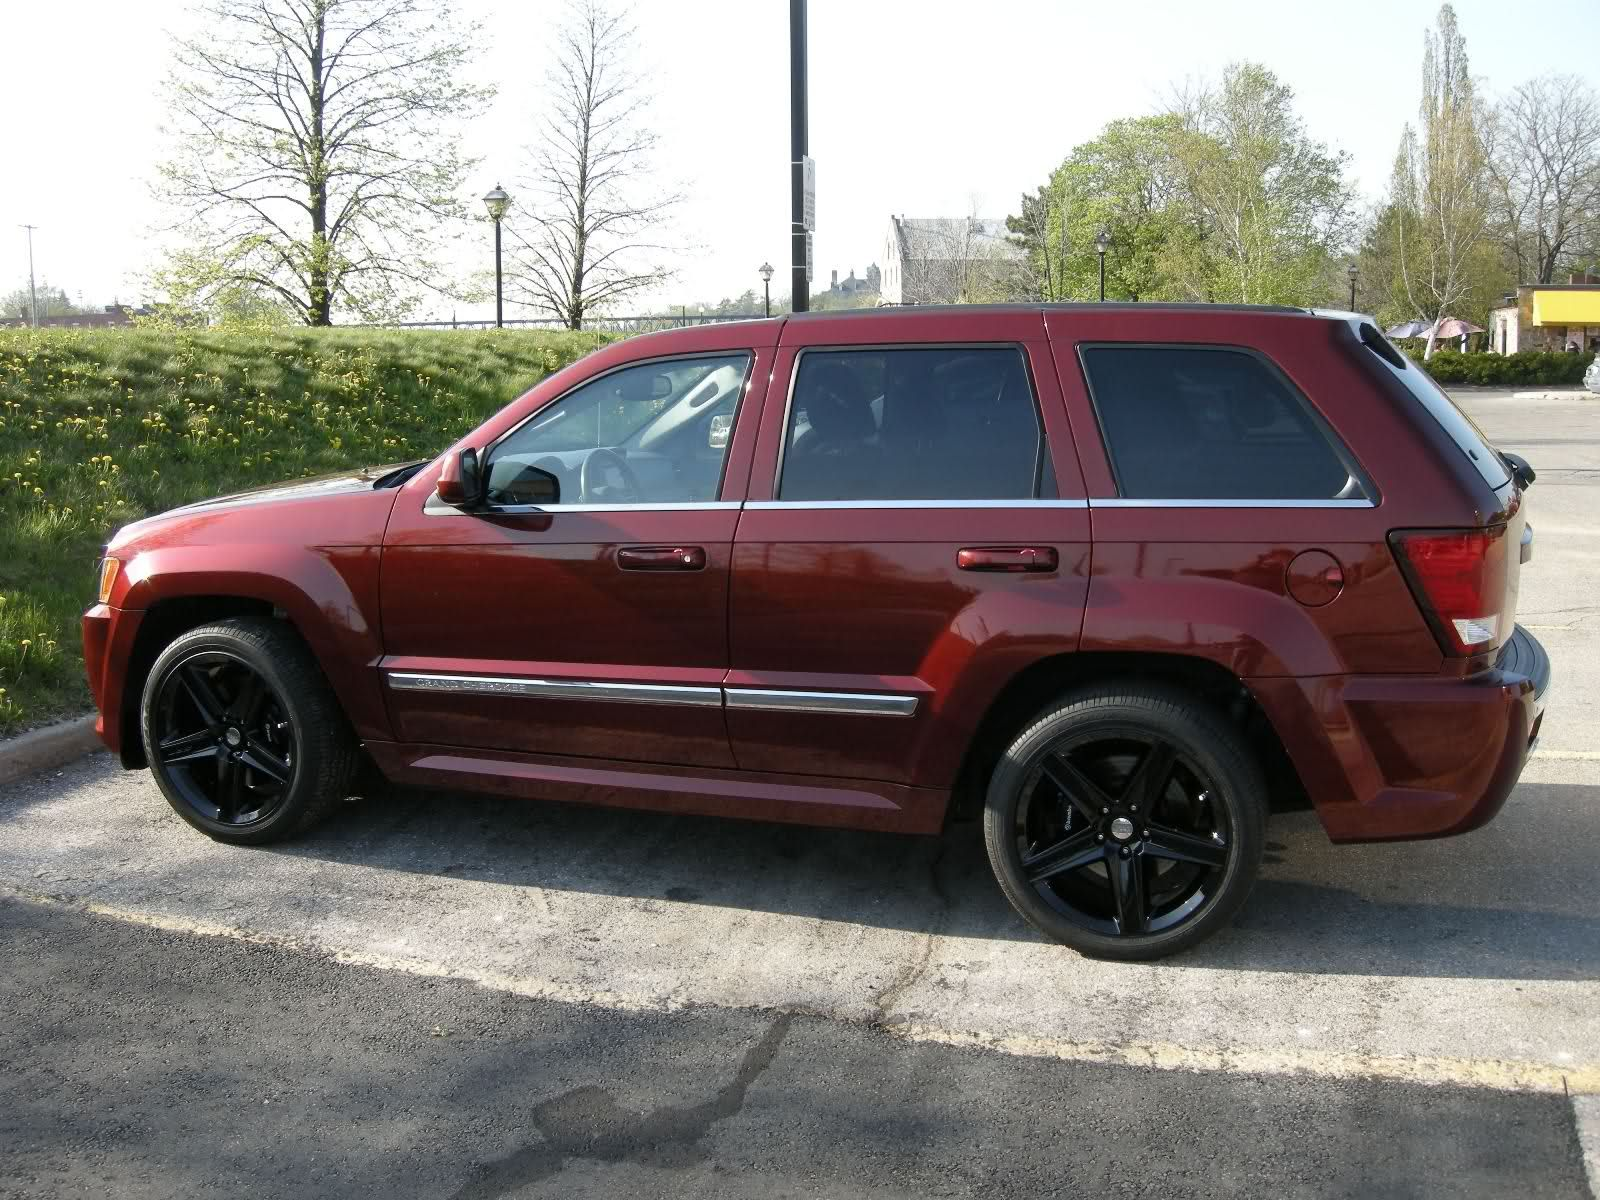 2005 Jeep Grand Cherokee With Black Rims On Rock Red